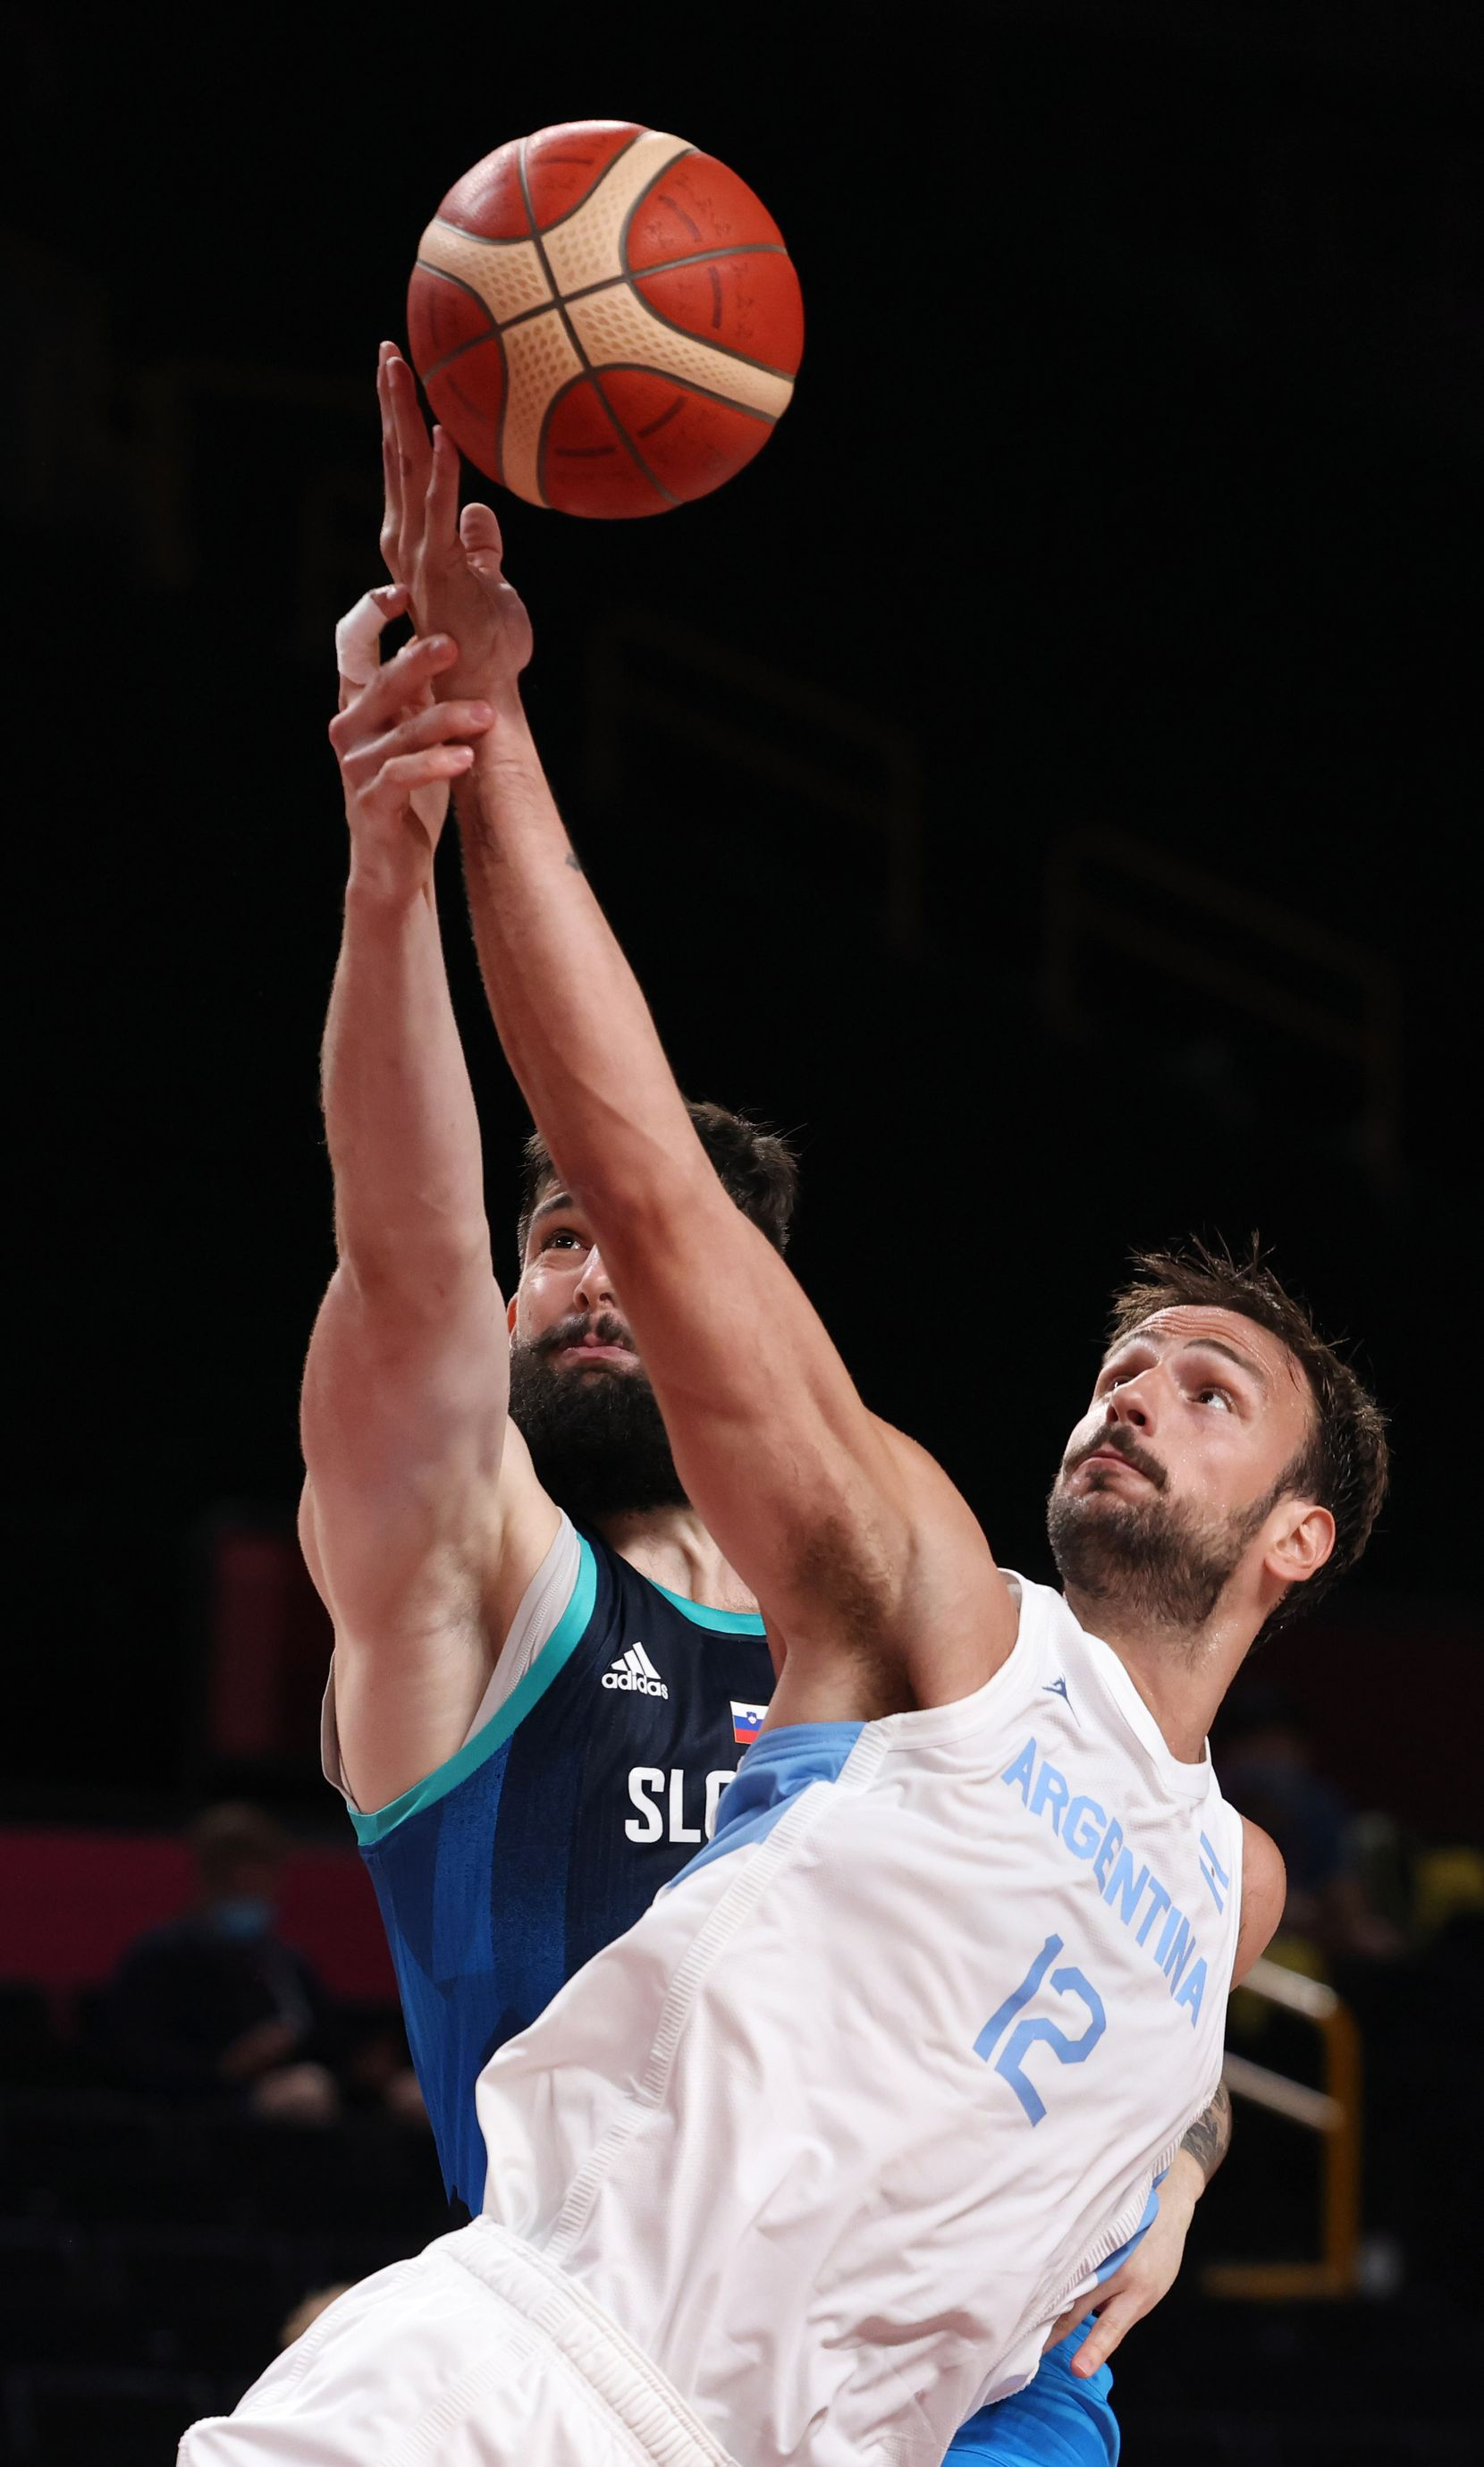 Slovenia's Ziga Dimec (27) and Argentina's Marcos Delia (12) go after the rebound in the first half of play during the postponed 2020 Tokyo Olympics at Saitama Super Arena on Monday, July 26, 2021, in Saitama, Japan. Slovenia defeated Argentina 118-100. (Vernon Bryant/The Dallas Morning News)